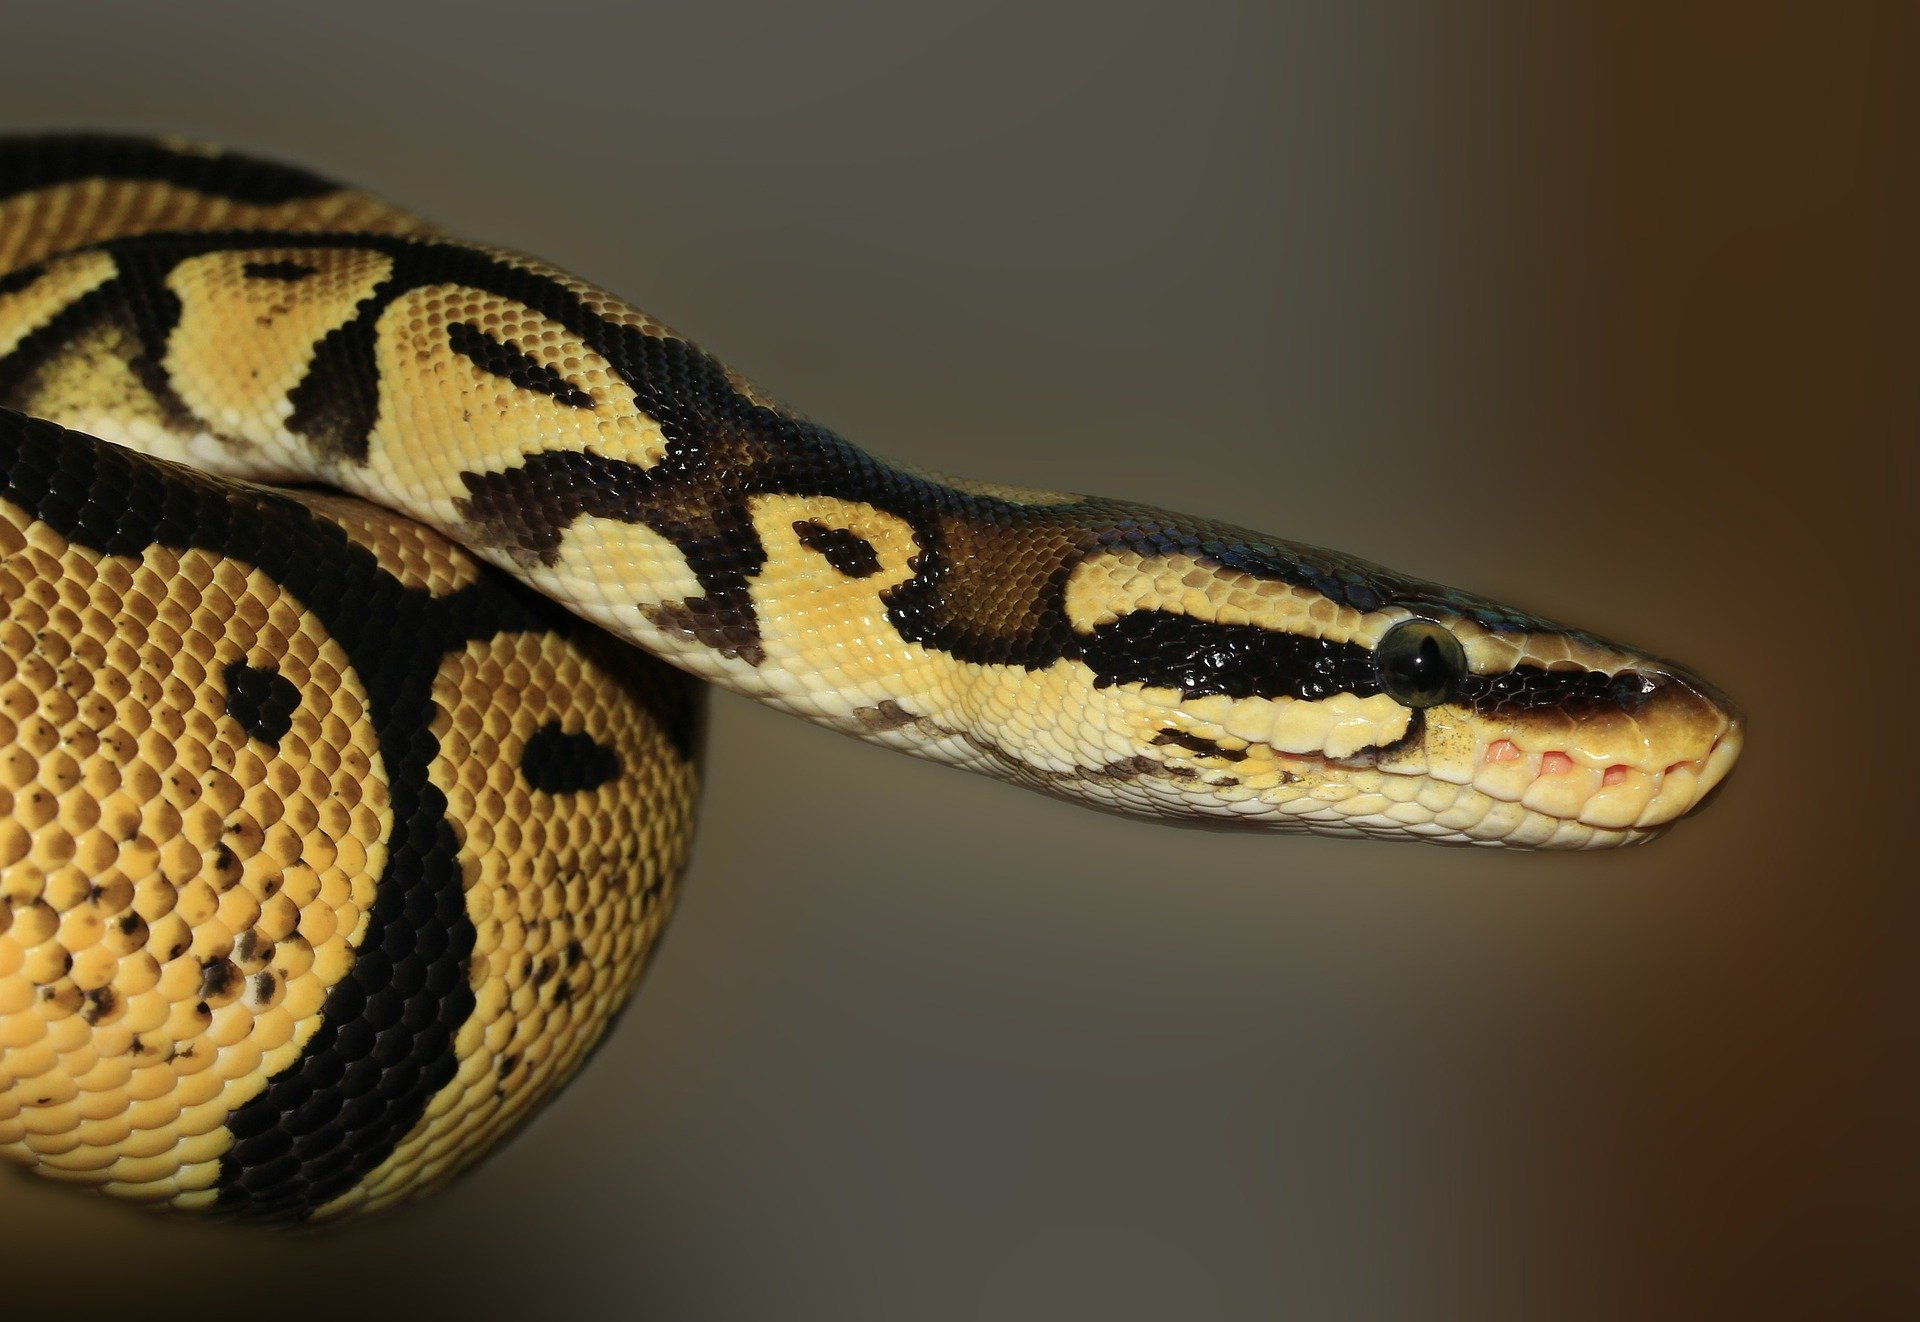 Snake Attacks Woman From Hedges, Watch That & Other Shocking Snake Videos